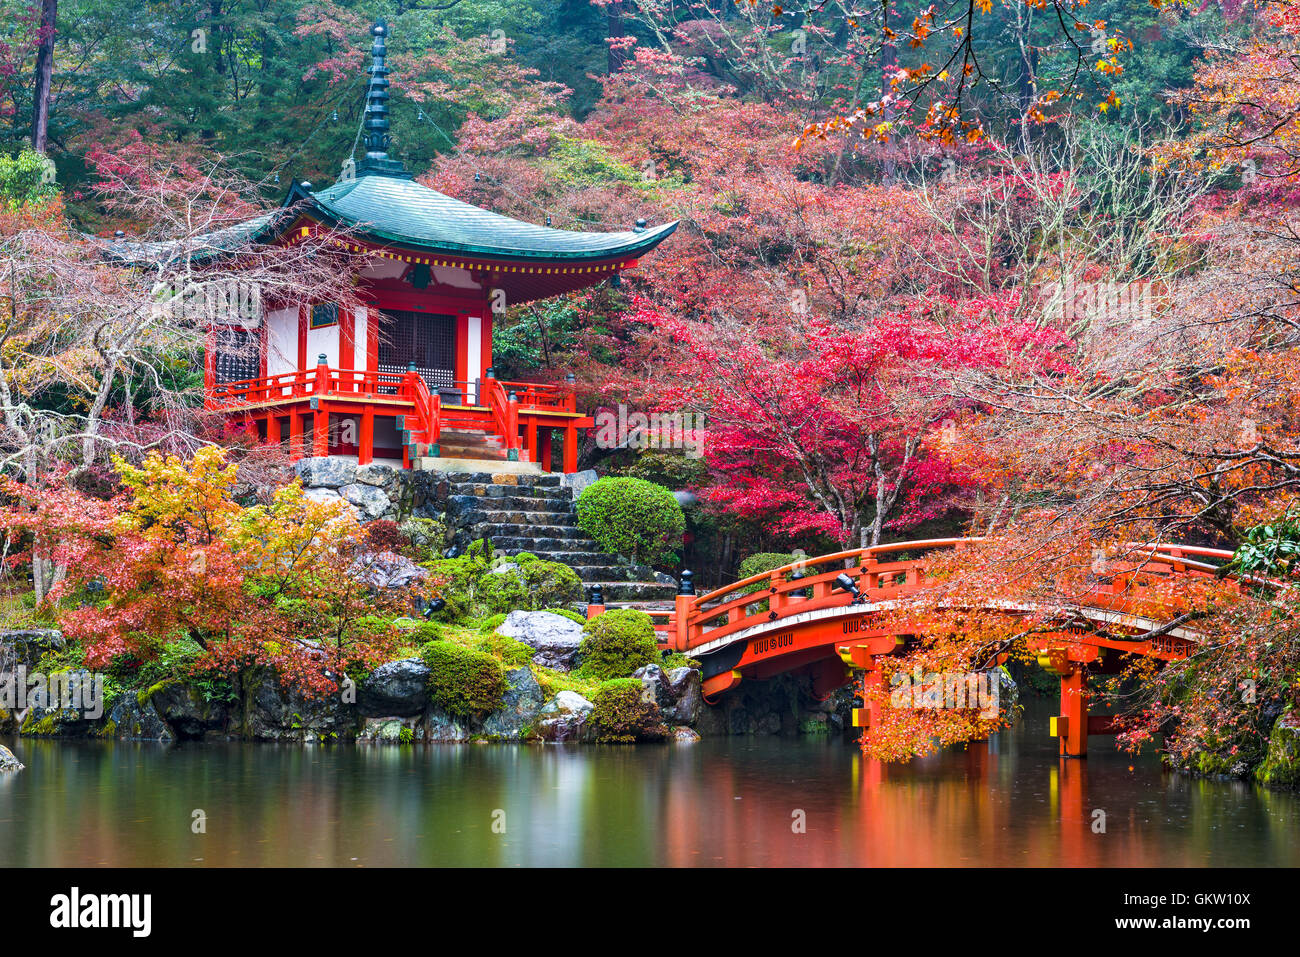 Kyoto, Japan at Daigo-ji Temple in autumn.Stock Photo